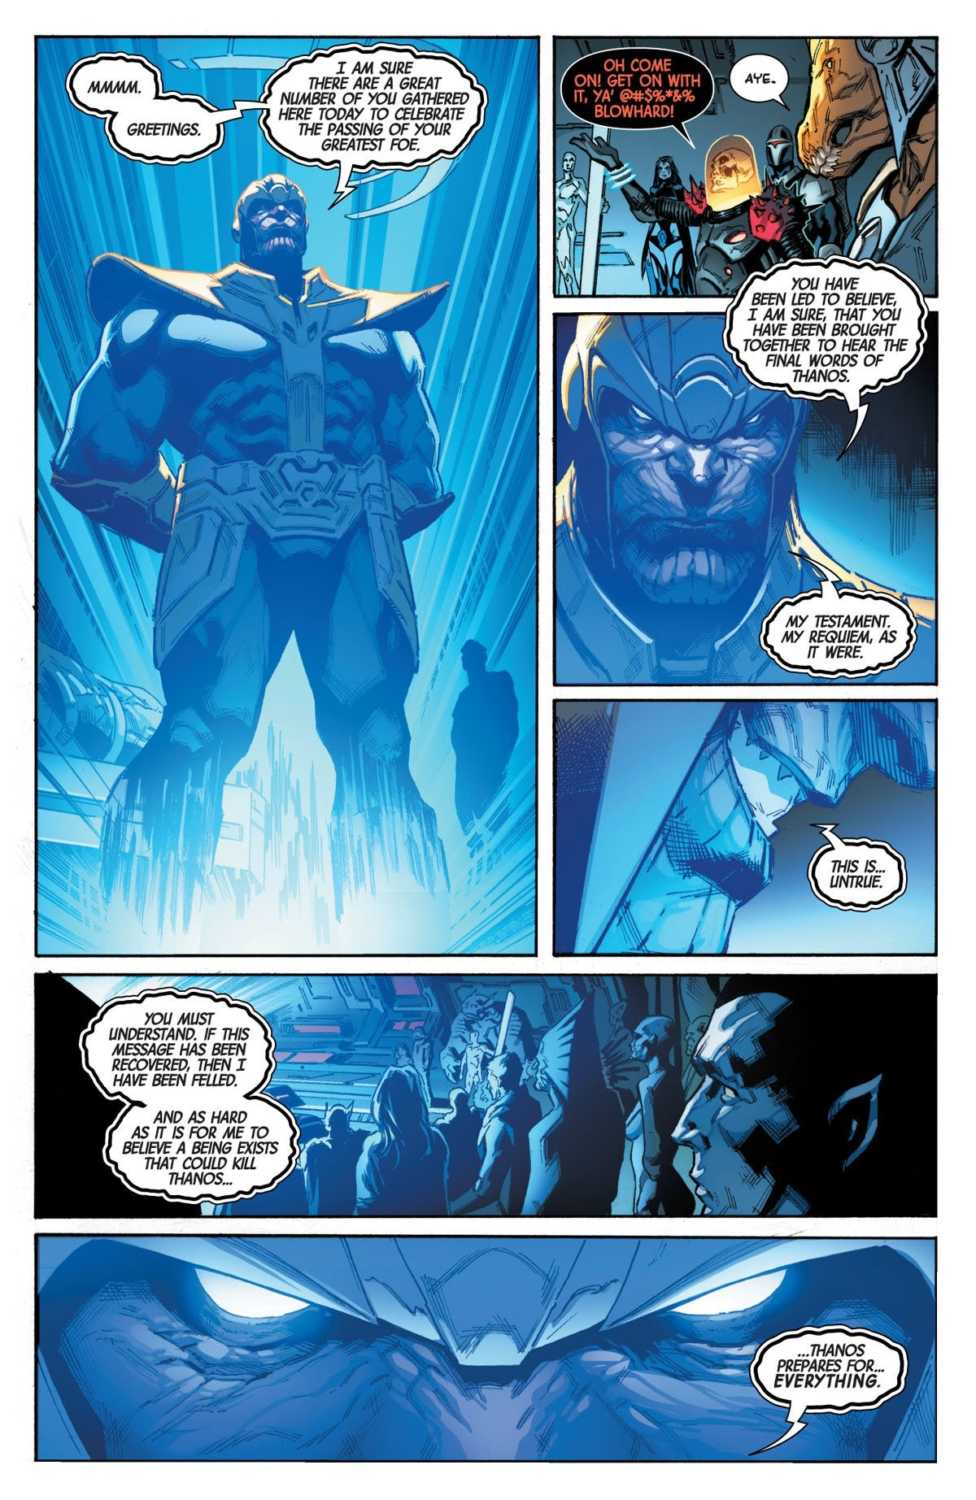 GUARDIANS OF THE GALAXY #1 Is Everything We Hoped For 2